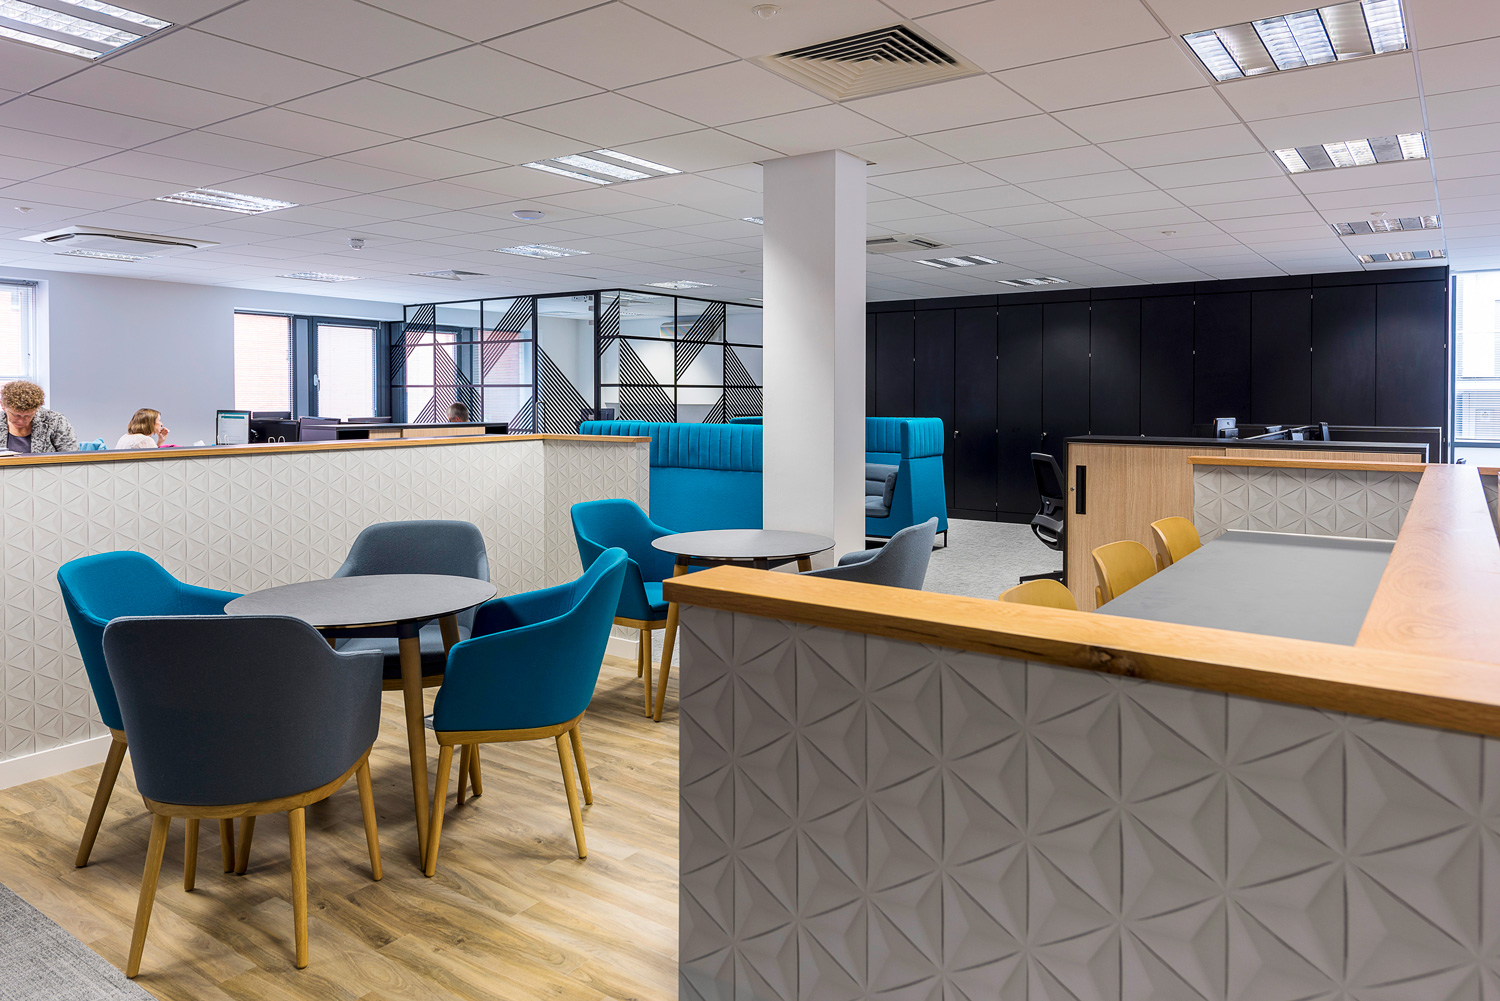 Office interior with blue chairs and feature wall